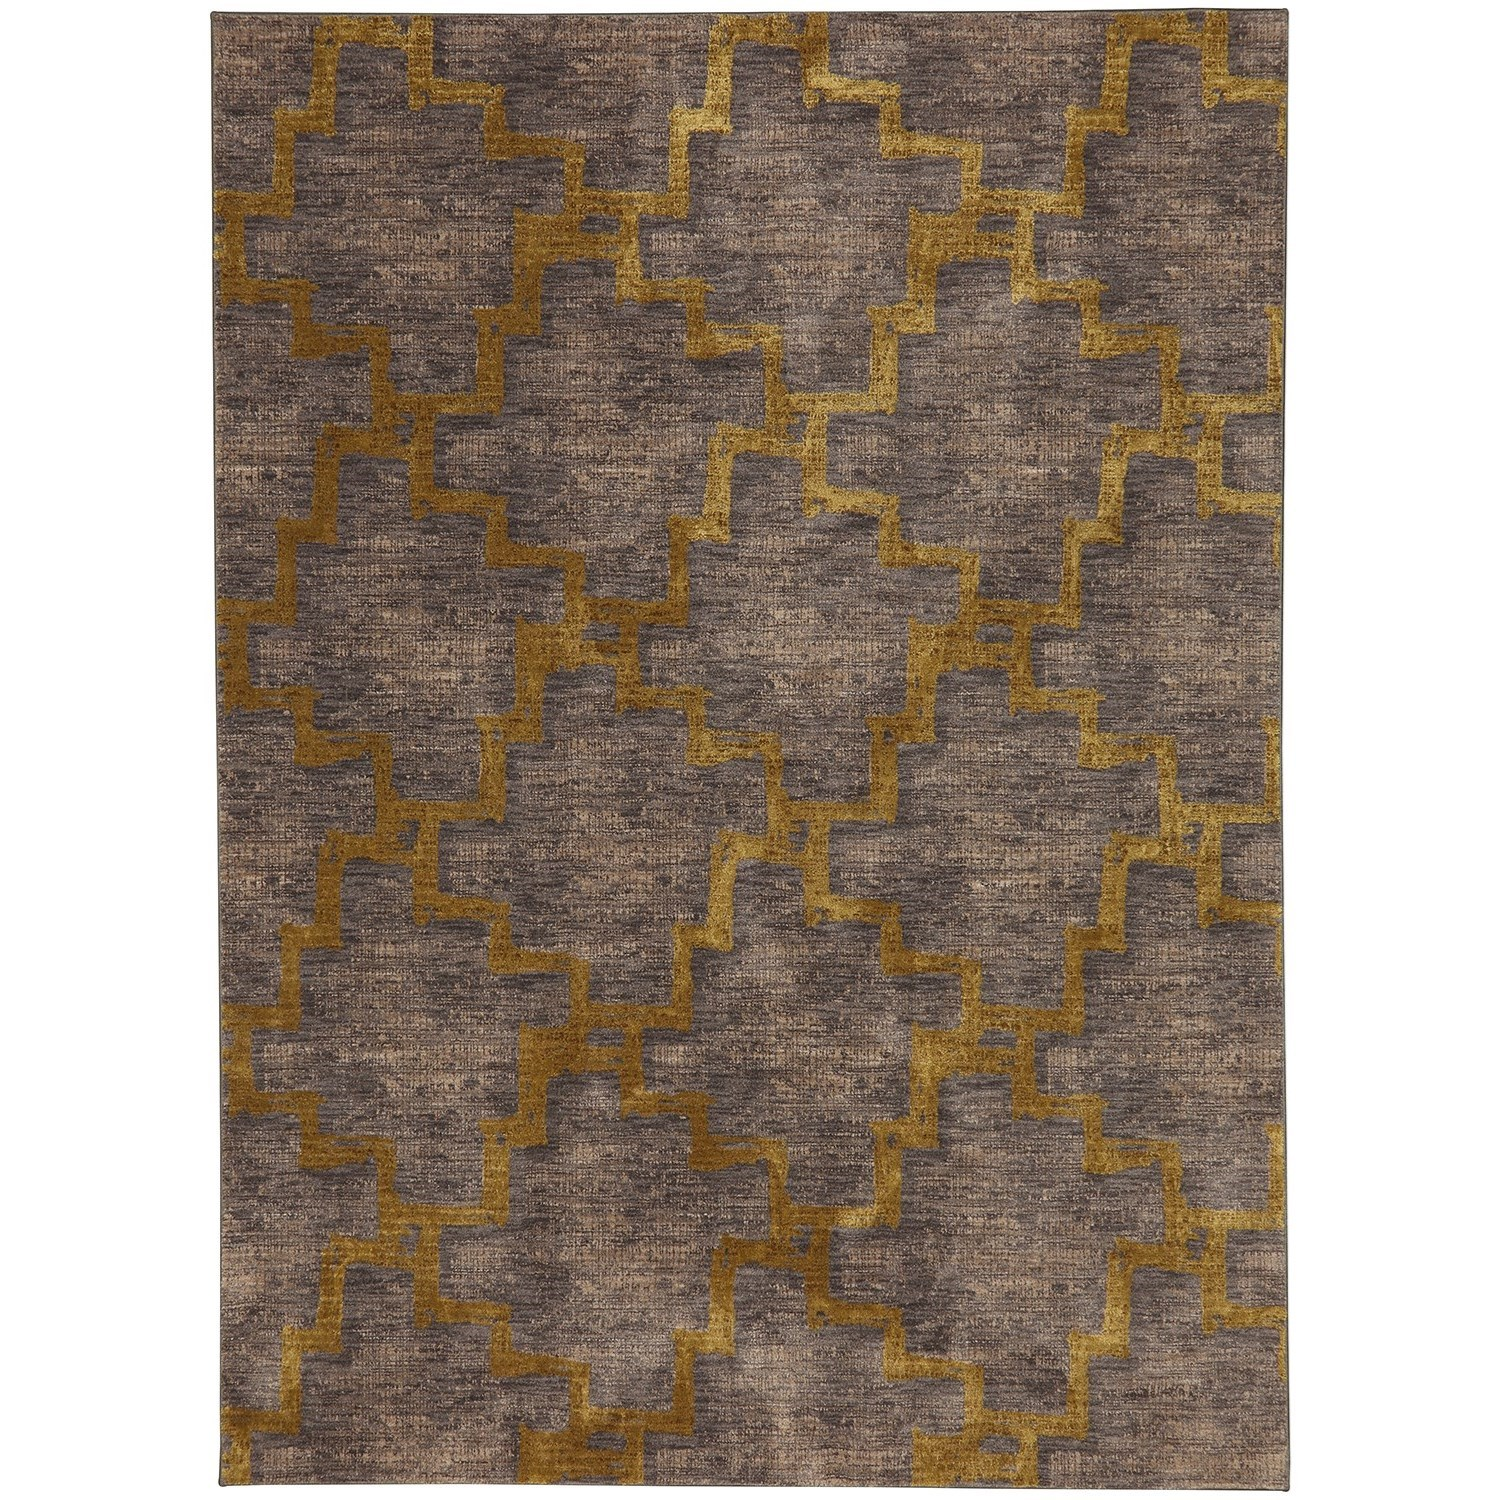 Cosmopolitan 8'x11' Rectangle Geometric Area Rug by Karastan Rugs at Alison Craig Home Furnishings